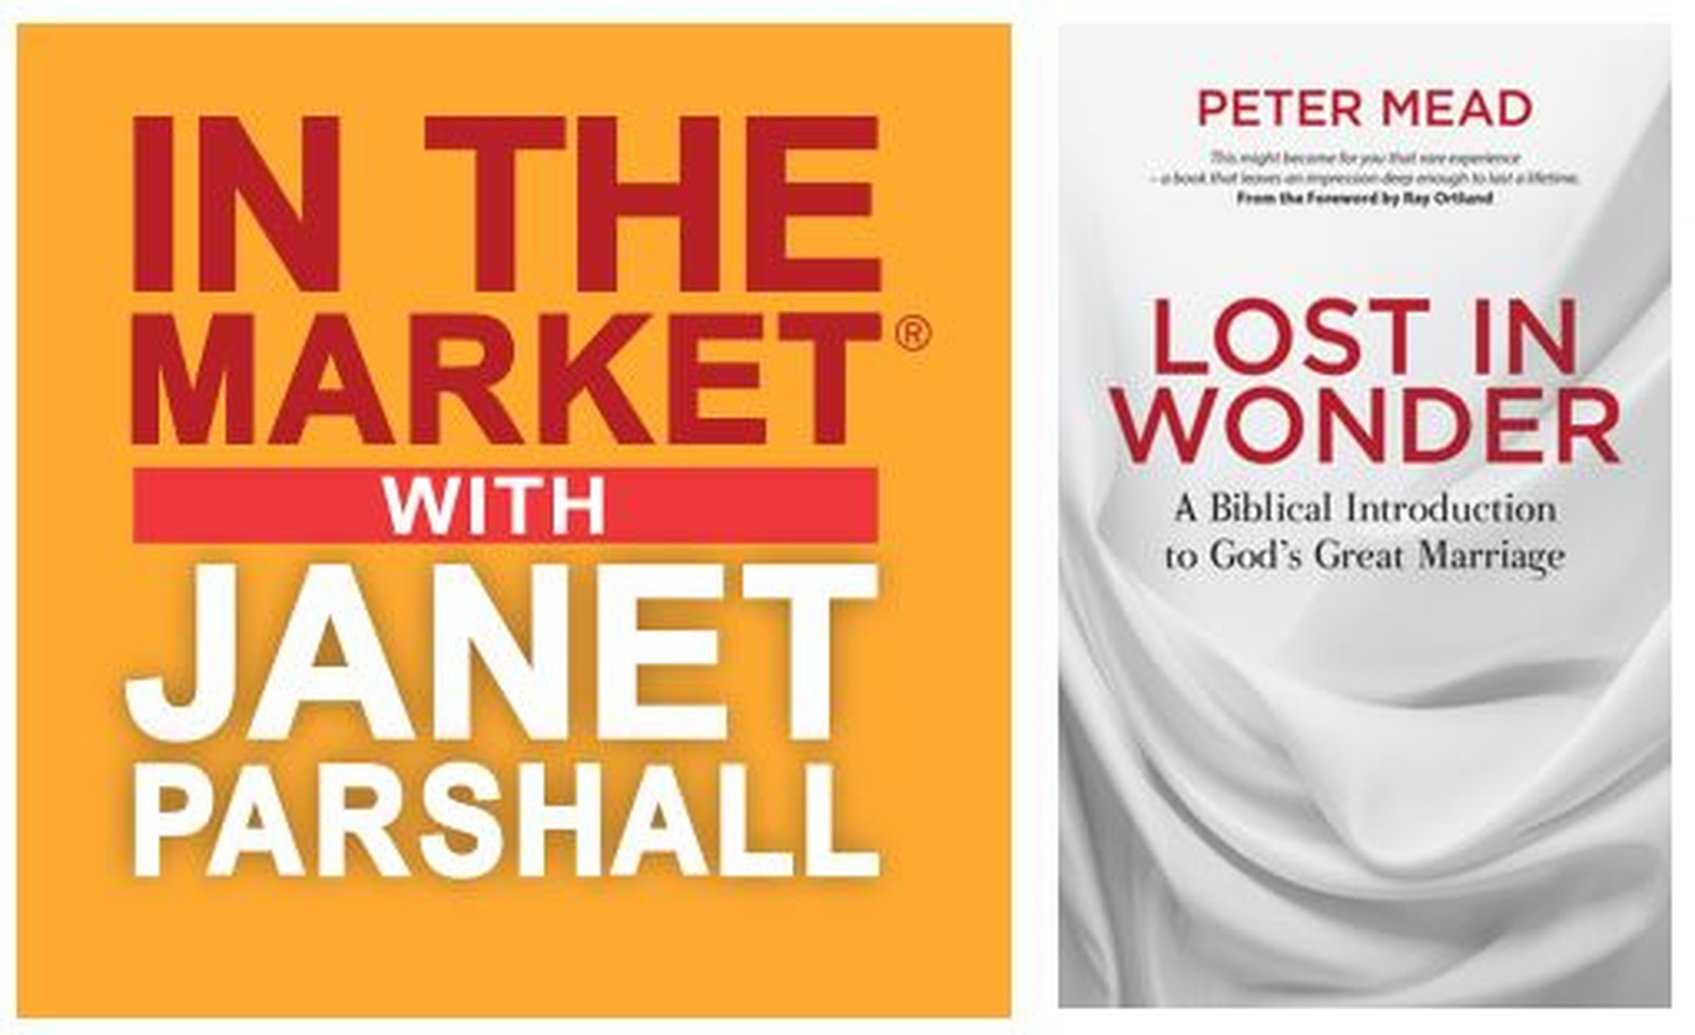 Peter Mead on In the Market with Janet Parshall